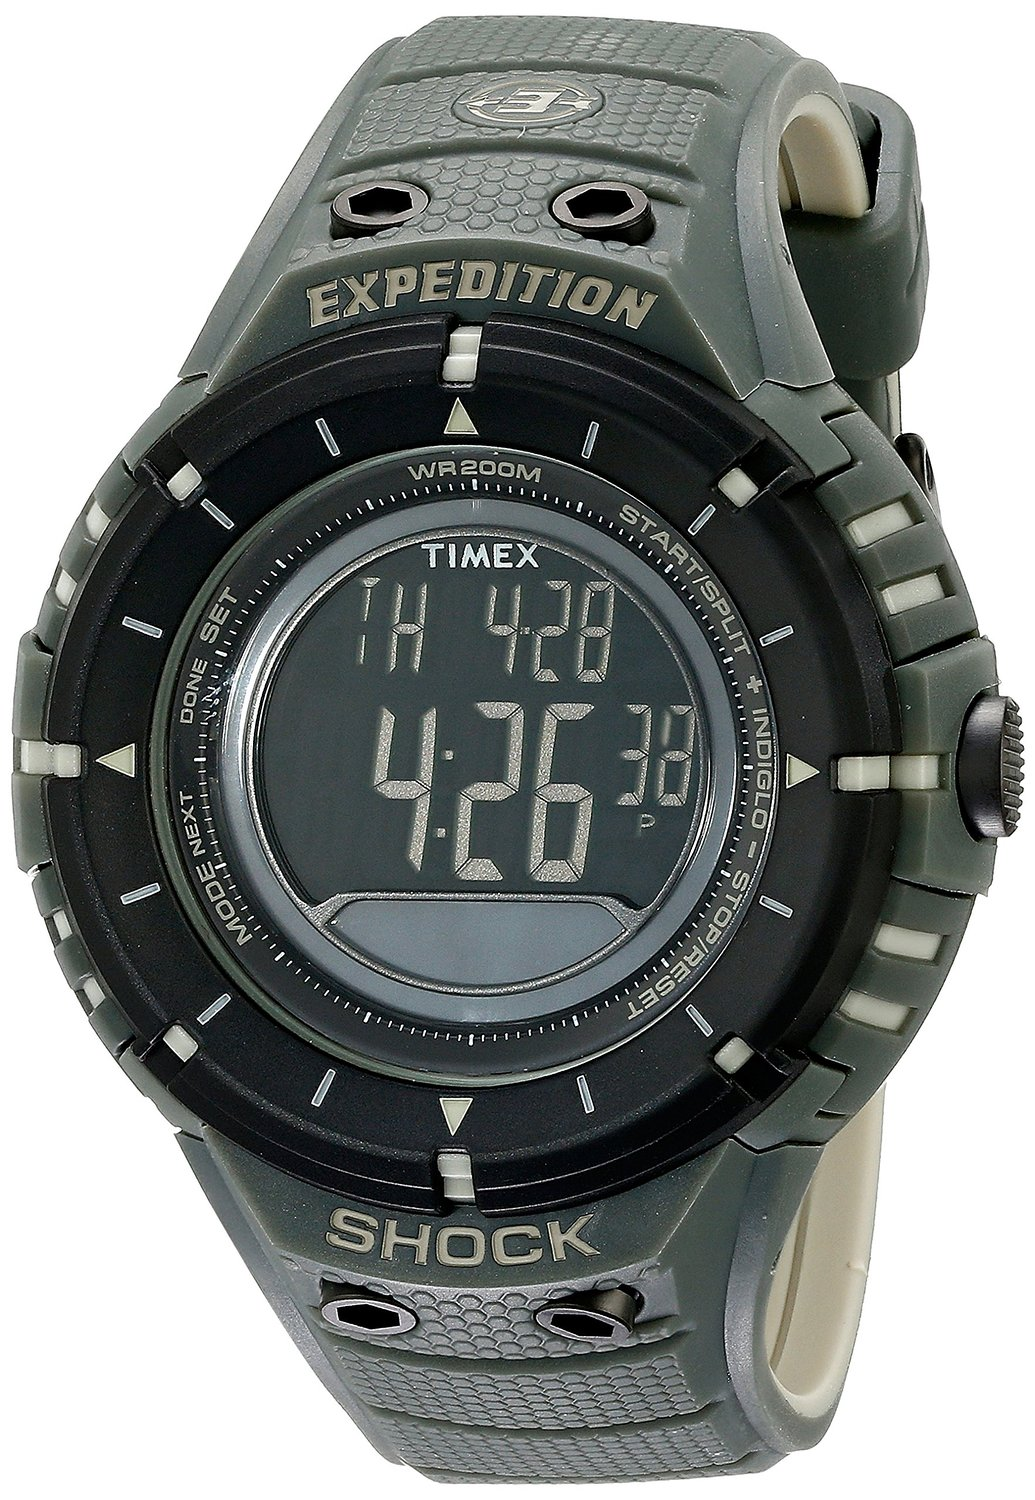 3ad52610cb5c Get Quotations · Timex Expedition Shock Digital Compass Watch